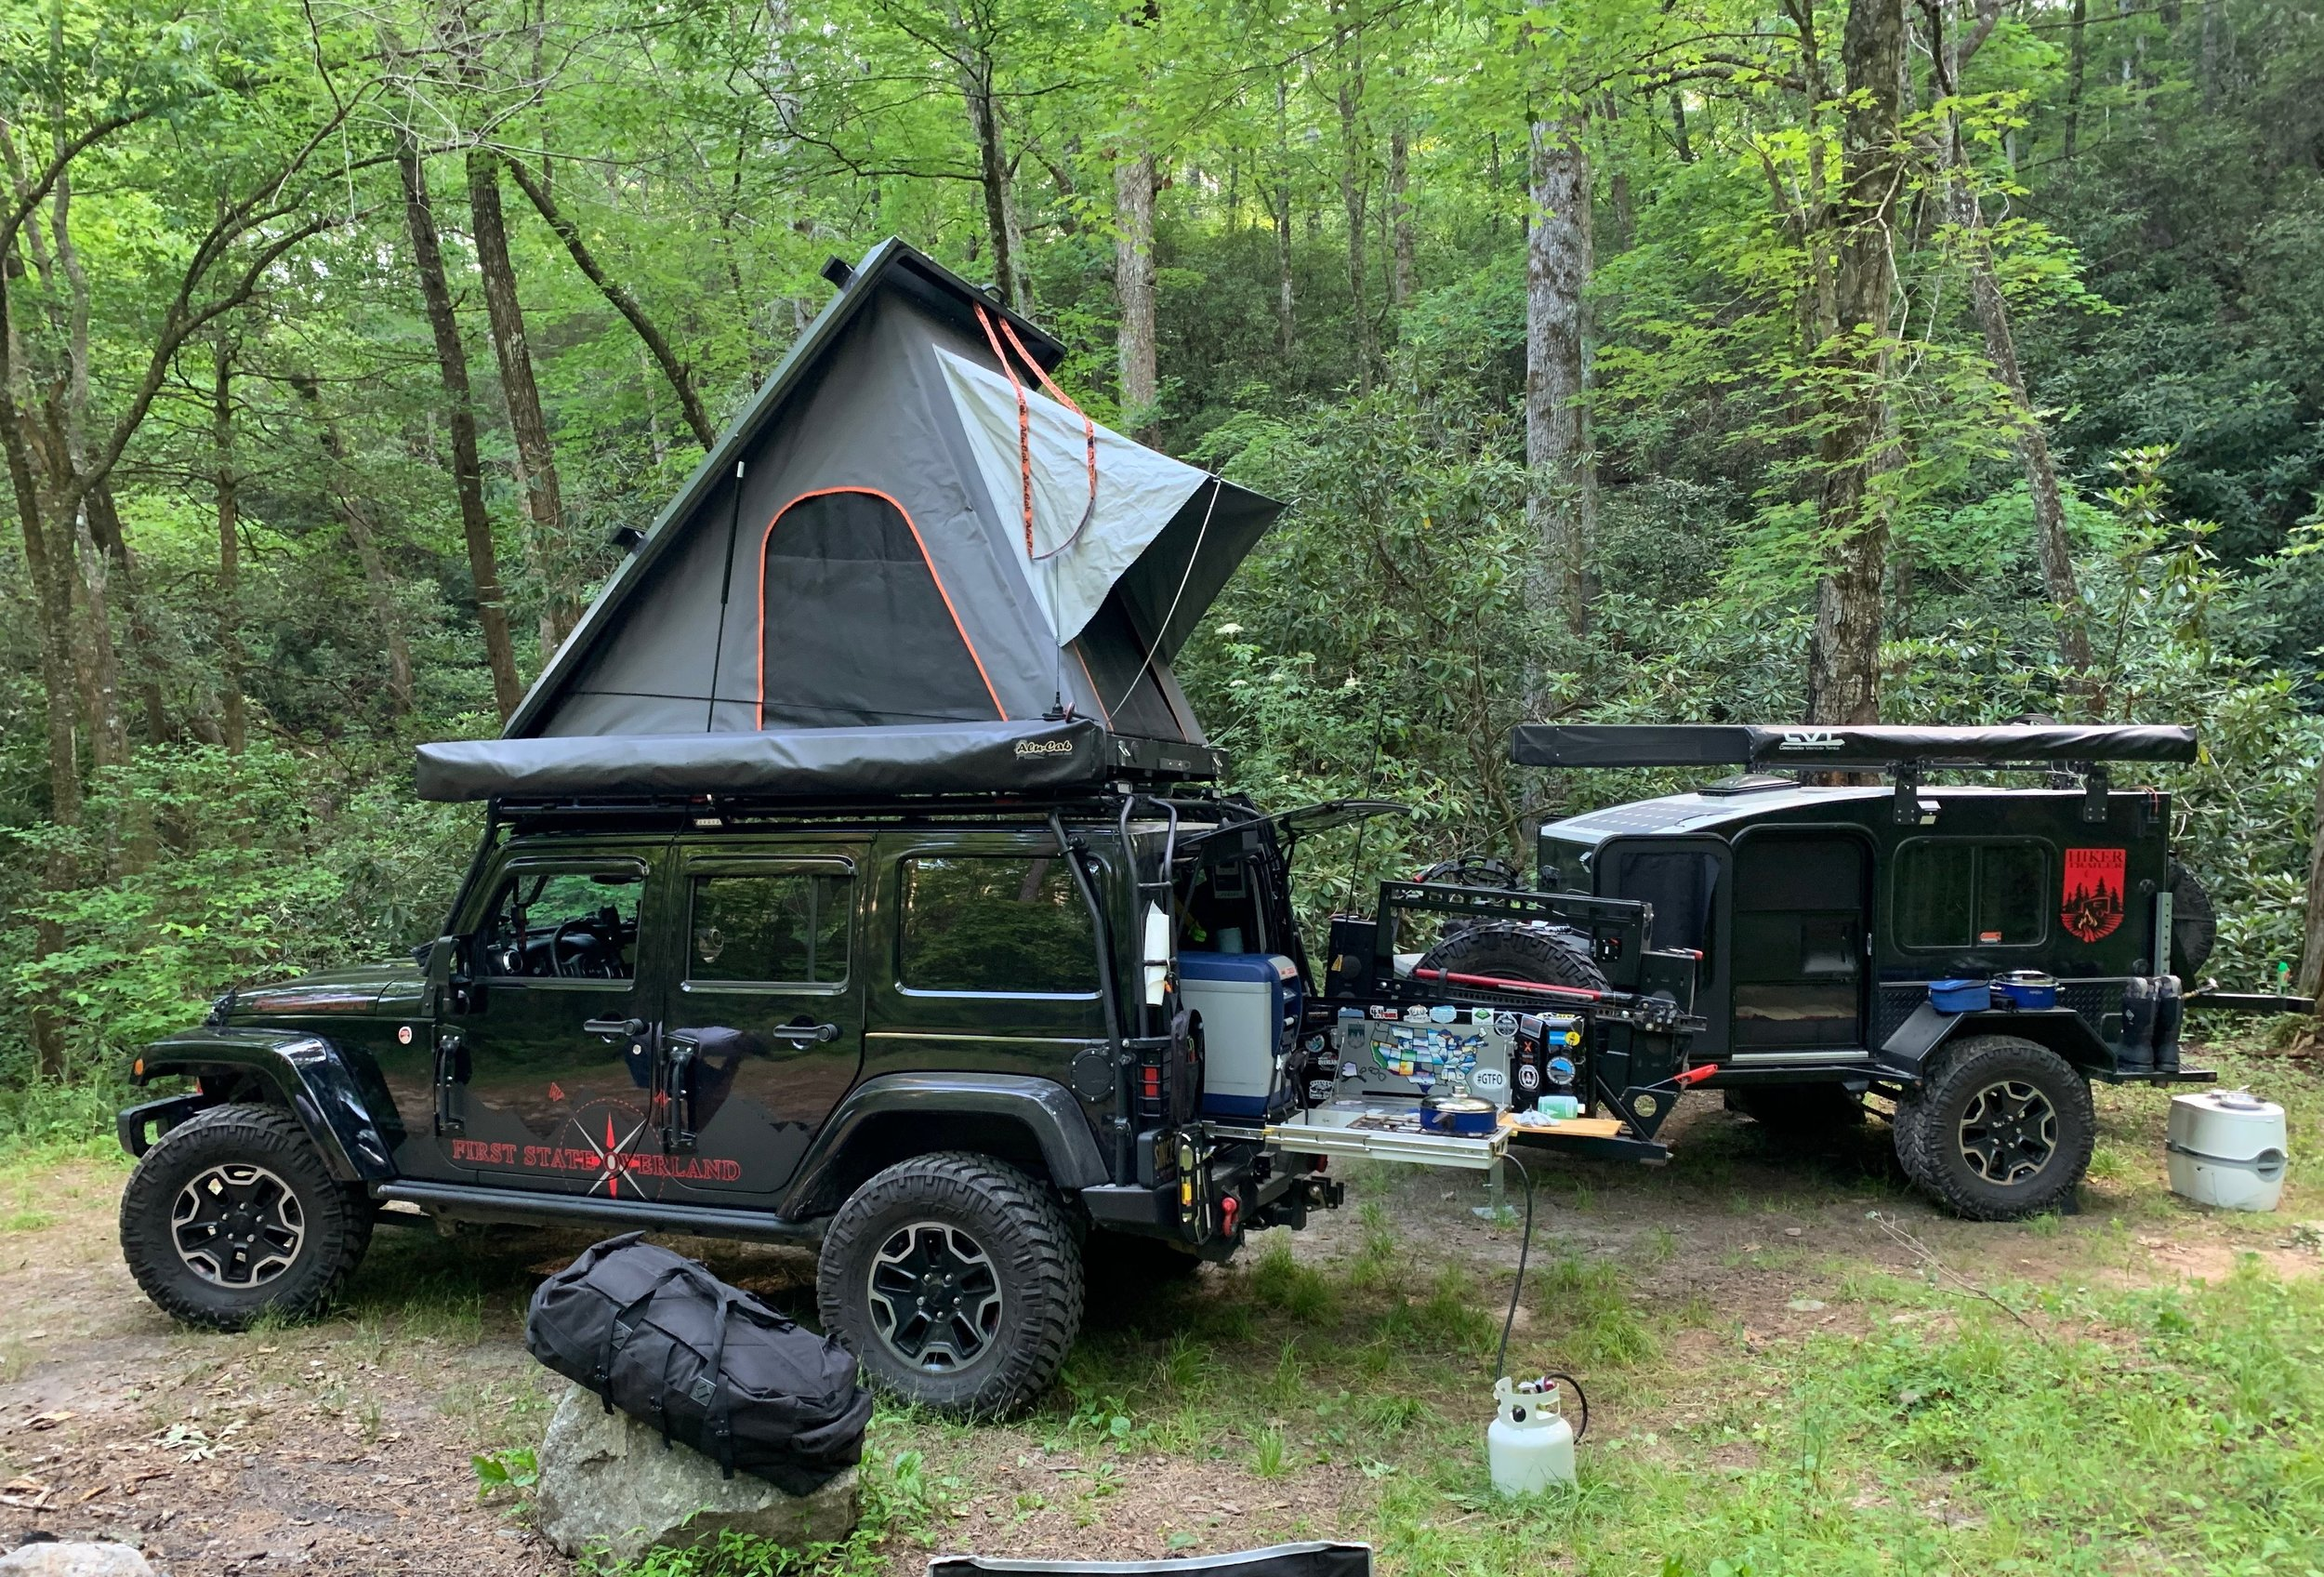 6/18/19 - on the GA Traverse